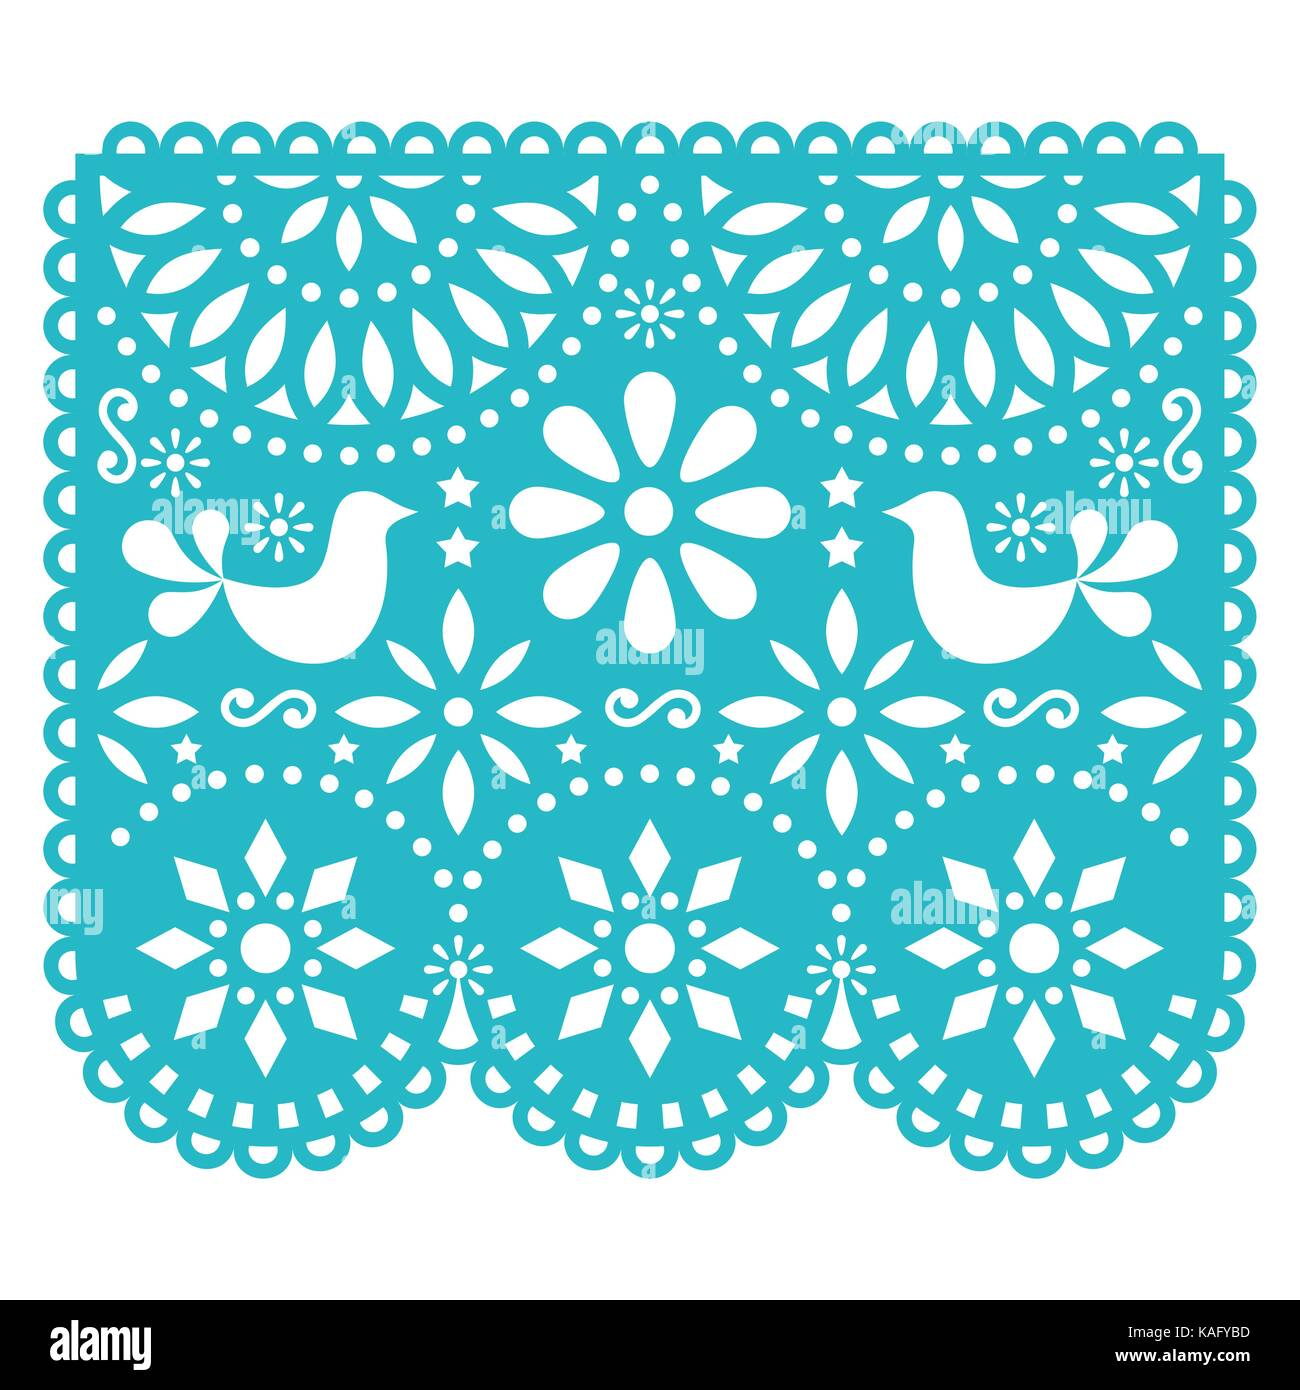 Papel picado vector template design mexican paper decorations with papel picado vector template design mexican paper decorations with birds and flowers traditional fiesta banner in turquoise traditional banner mightylinksfo